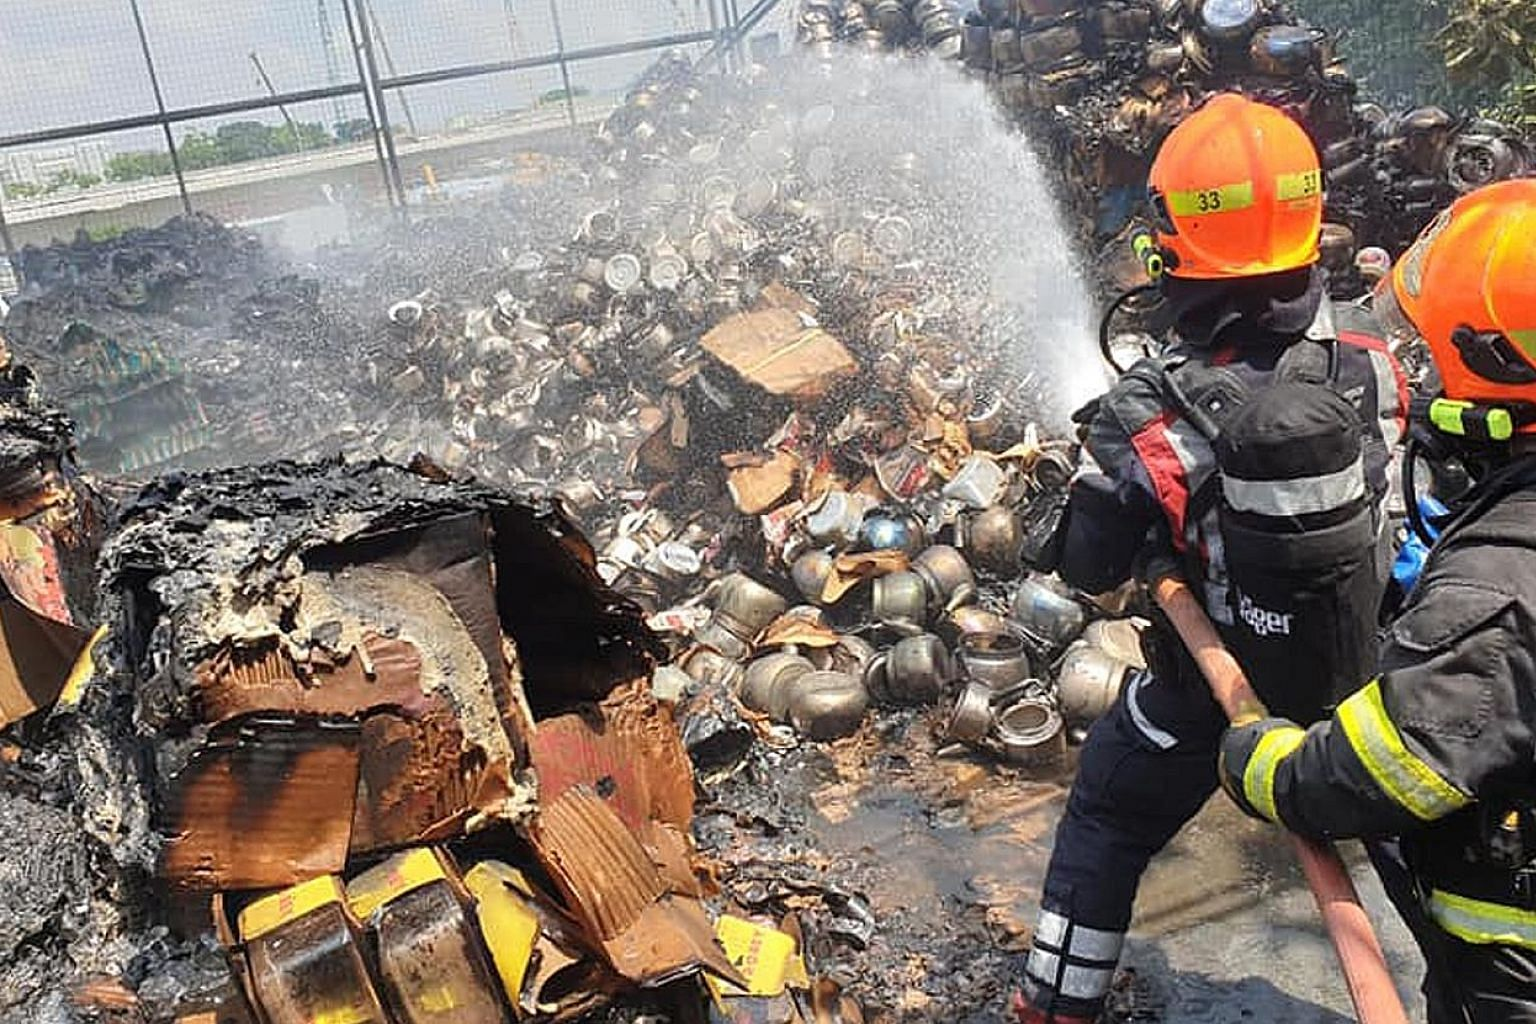 Singapore Civil Defence Force firefighters putting out a fire at 29 Kim Chuan Drive that they were alerted to at about 11.35am yesterday.